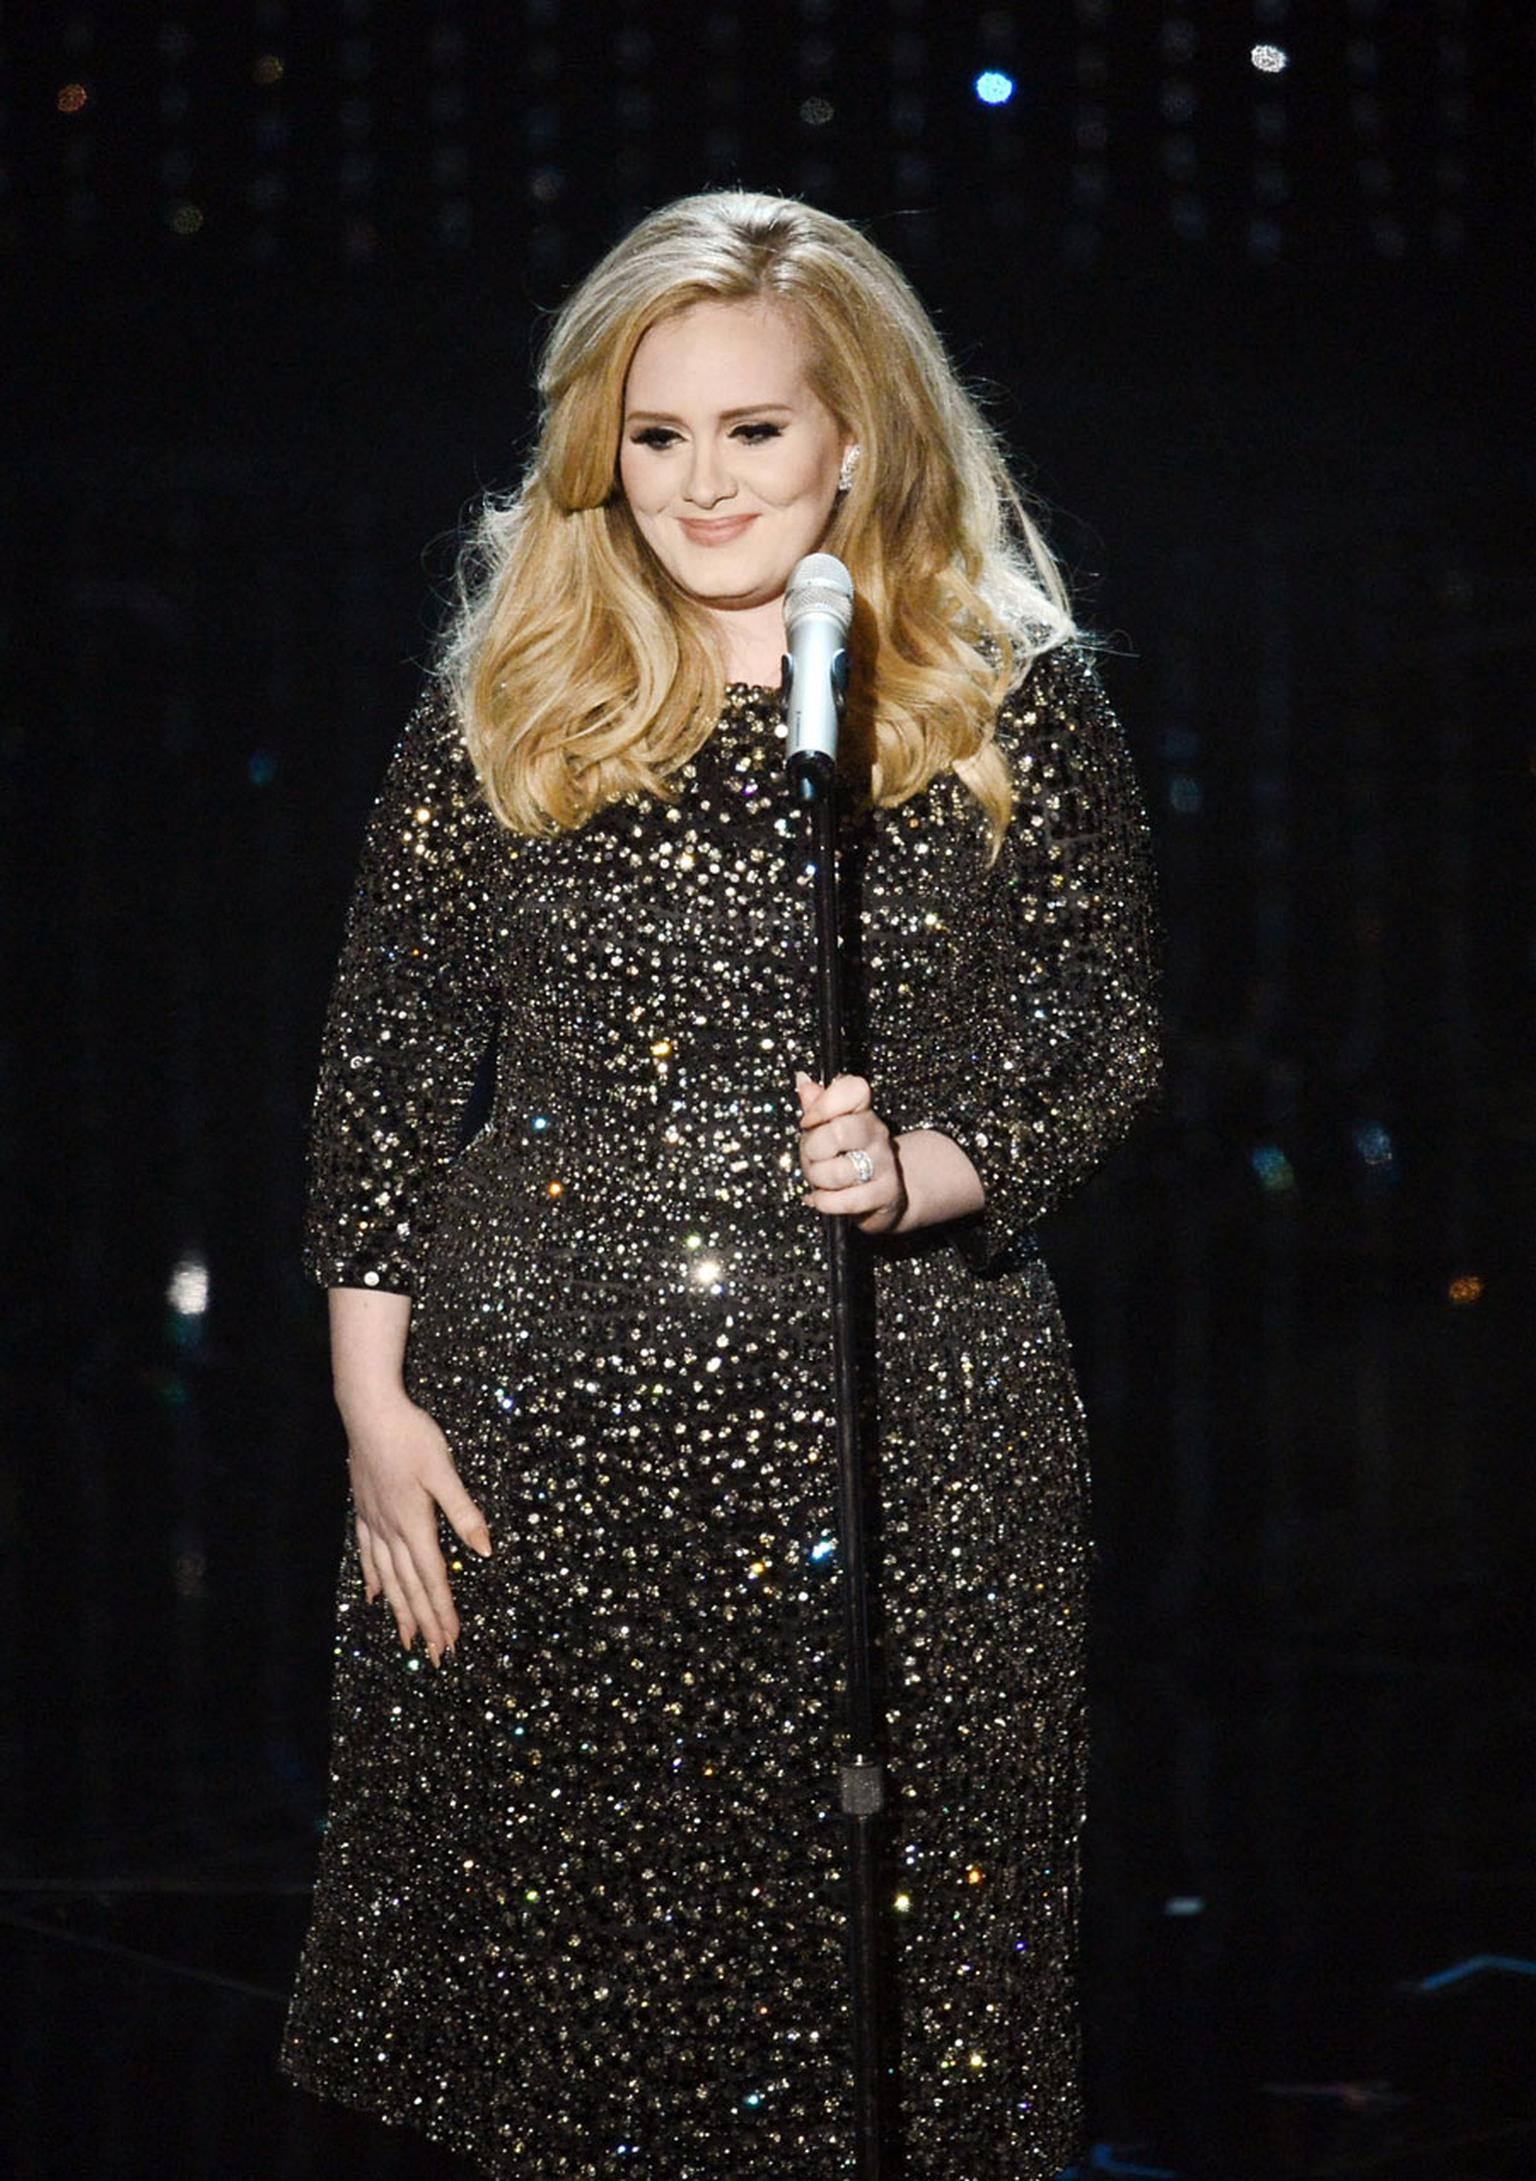 Adele---Van-Cleef-and-Arpels---Photo-by--Kevin-Winter-162588